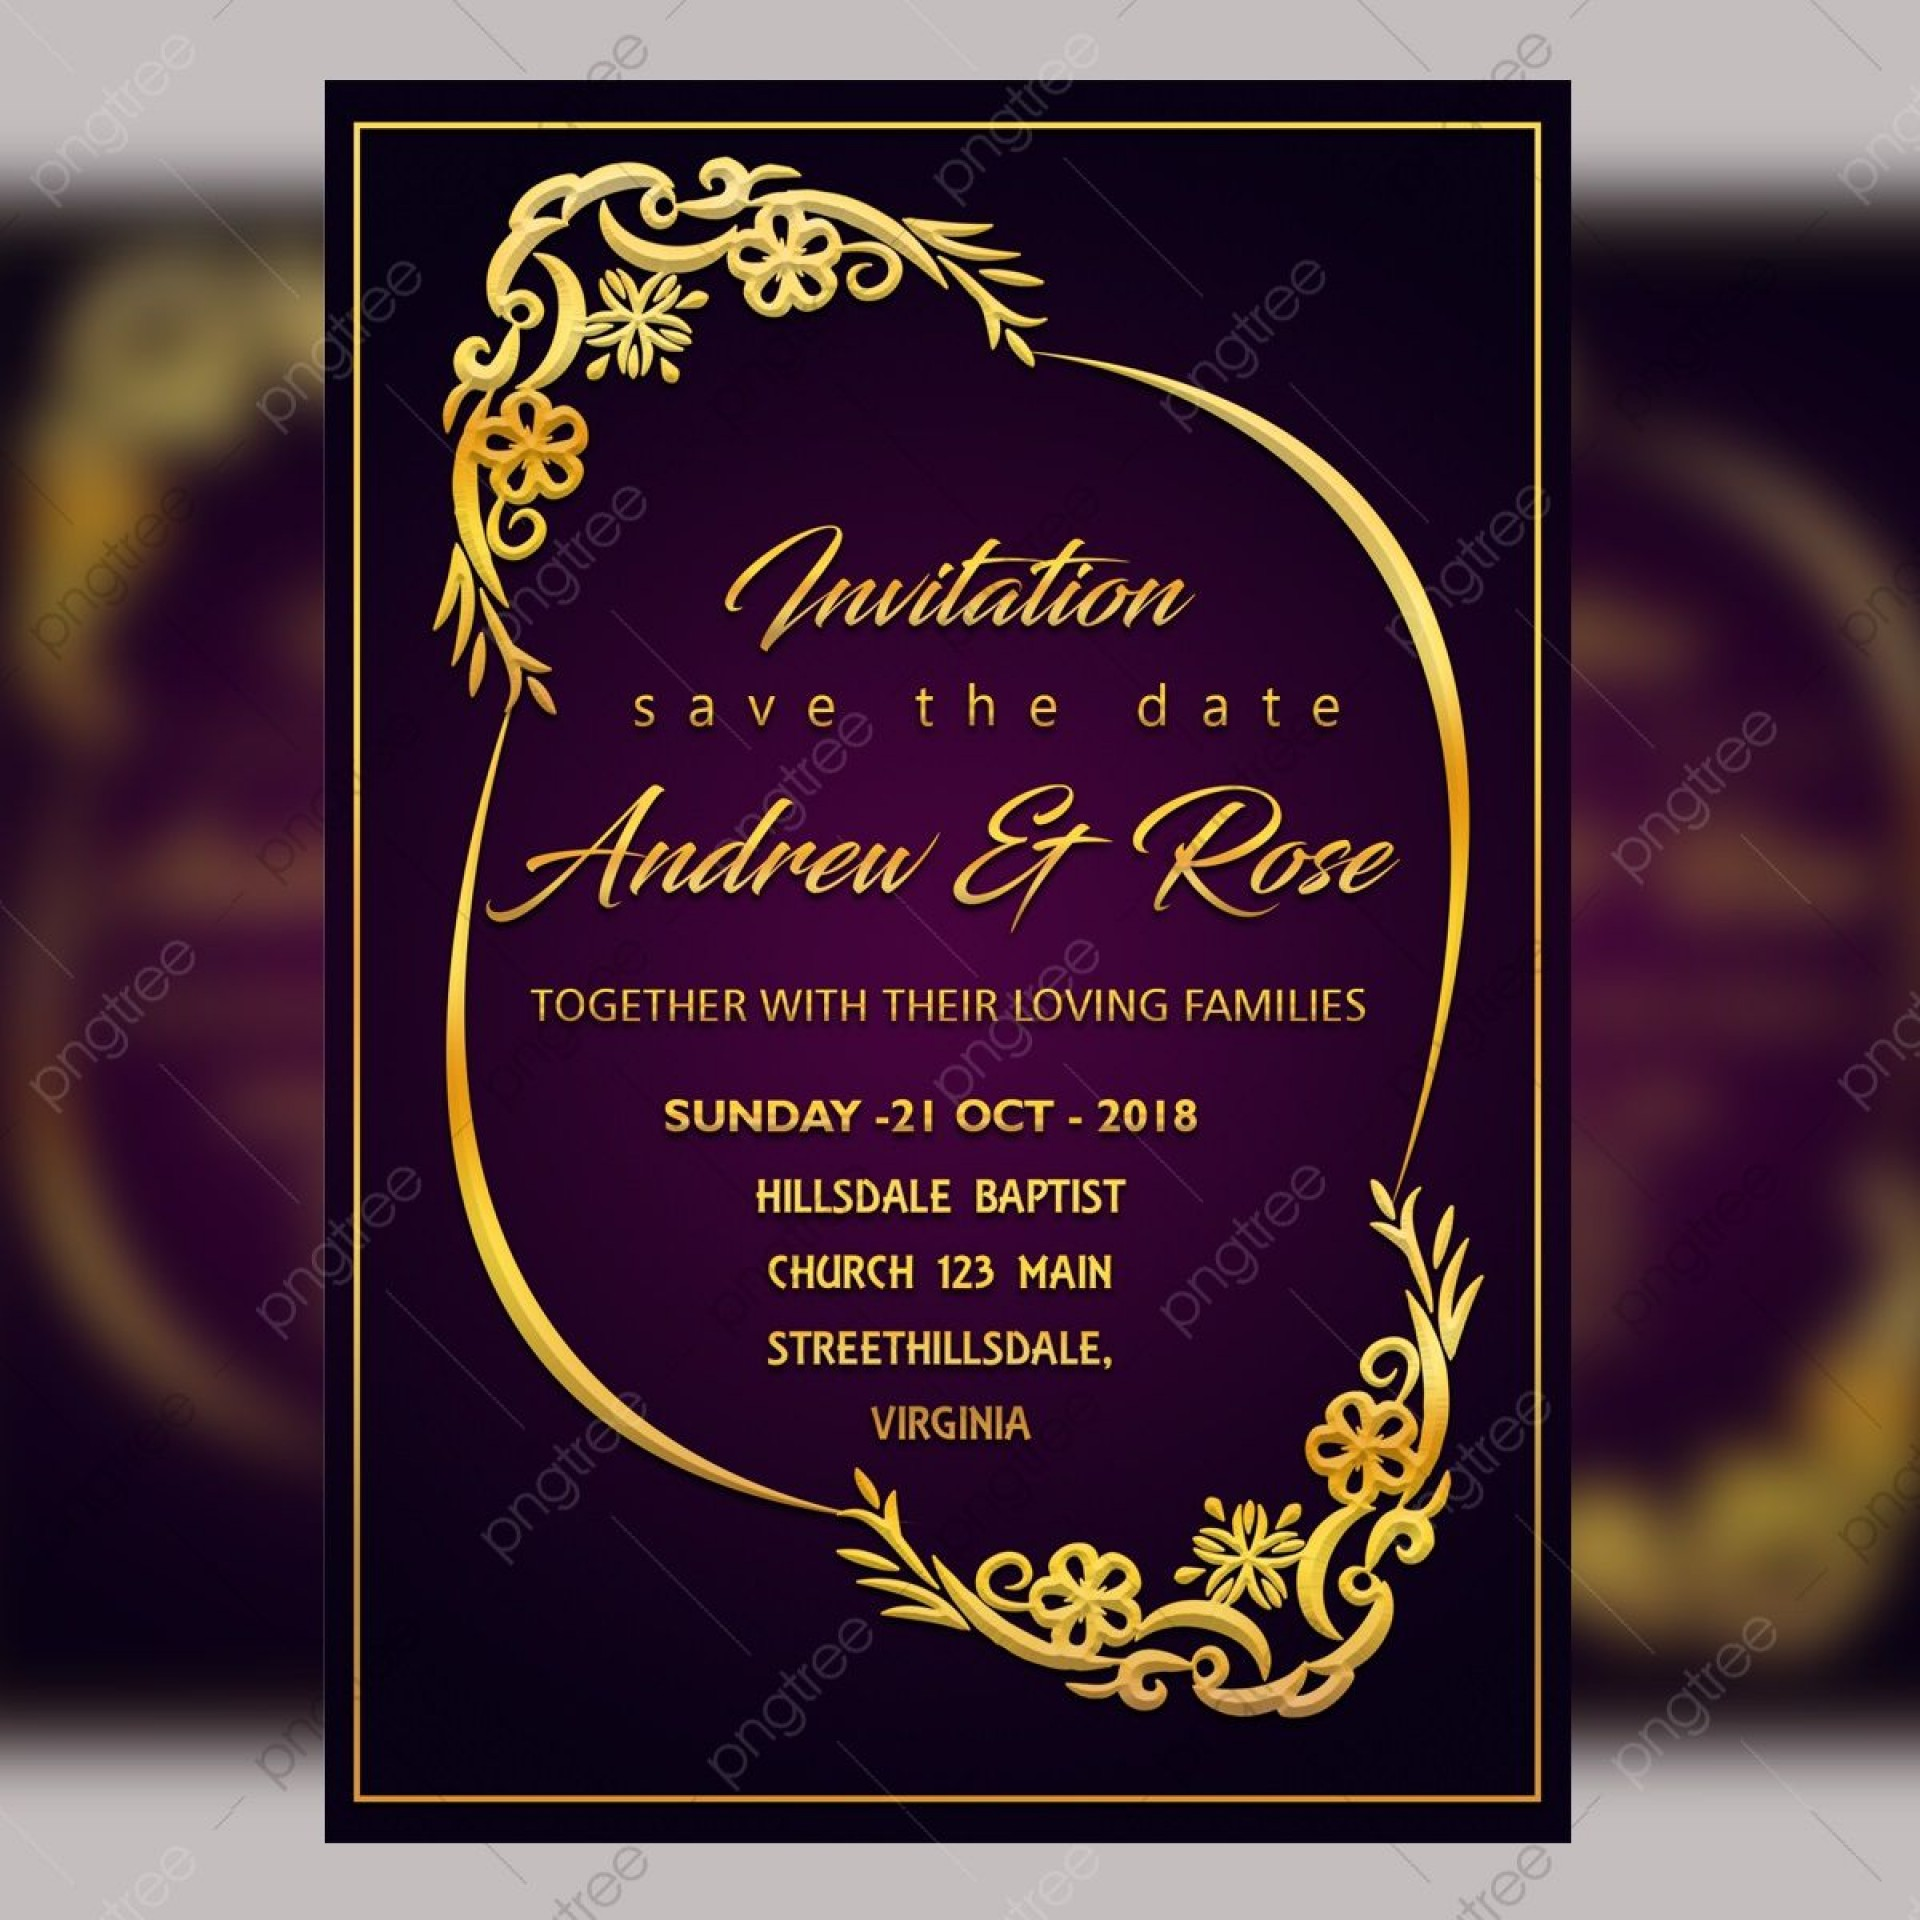 009 Unbelievable Free Download Invitation Card Template Psd Sample  Indian Wedding Birthday1920